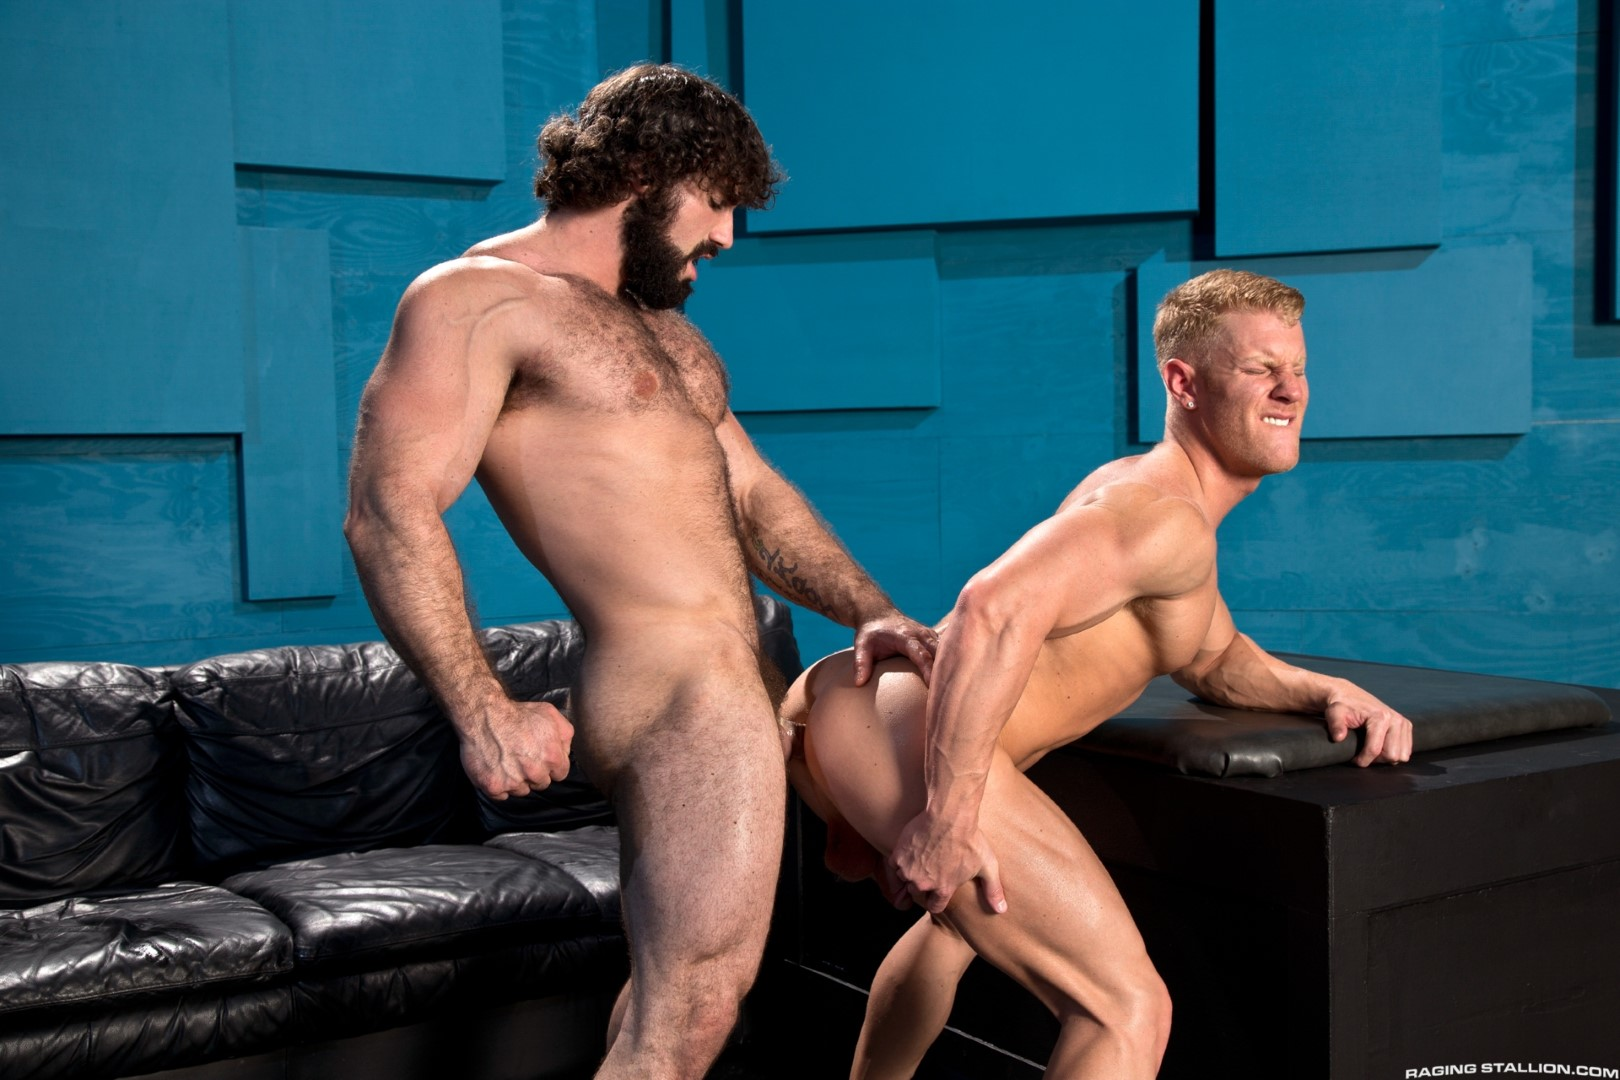 Raging Stallion Johnny V and Jaxton Wheeler Hairy Muscle Hunk Fucking Amateur Gay Porn 07 Hairy Muscle Hunk Jaxton Wheeler Fucking A Muscle Jock